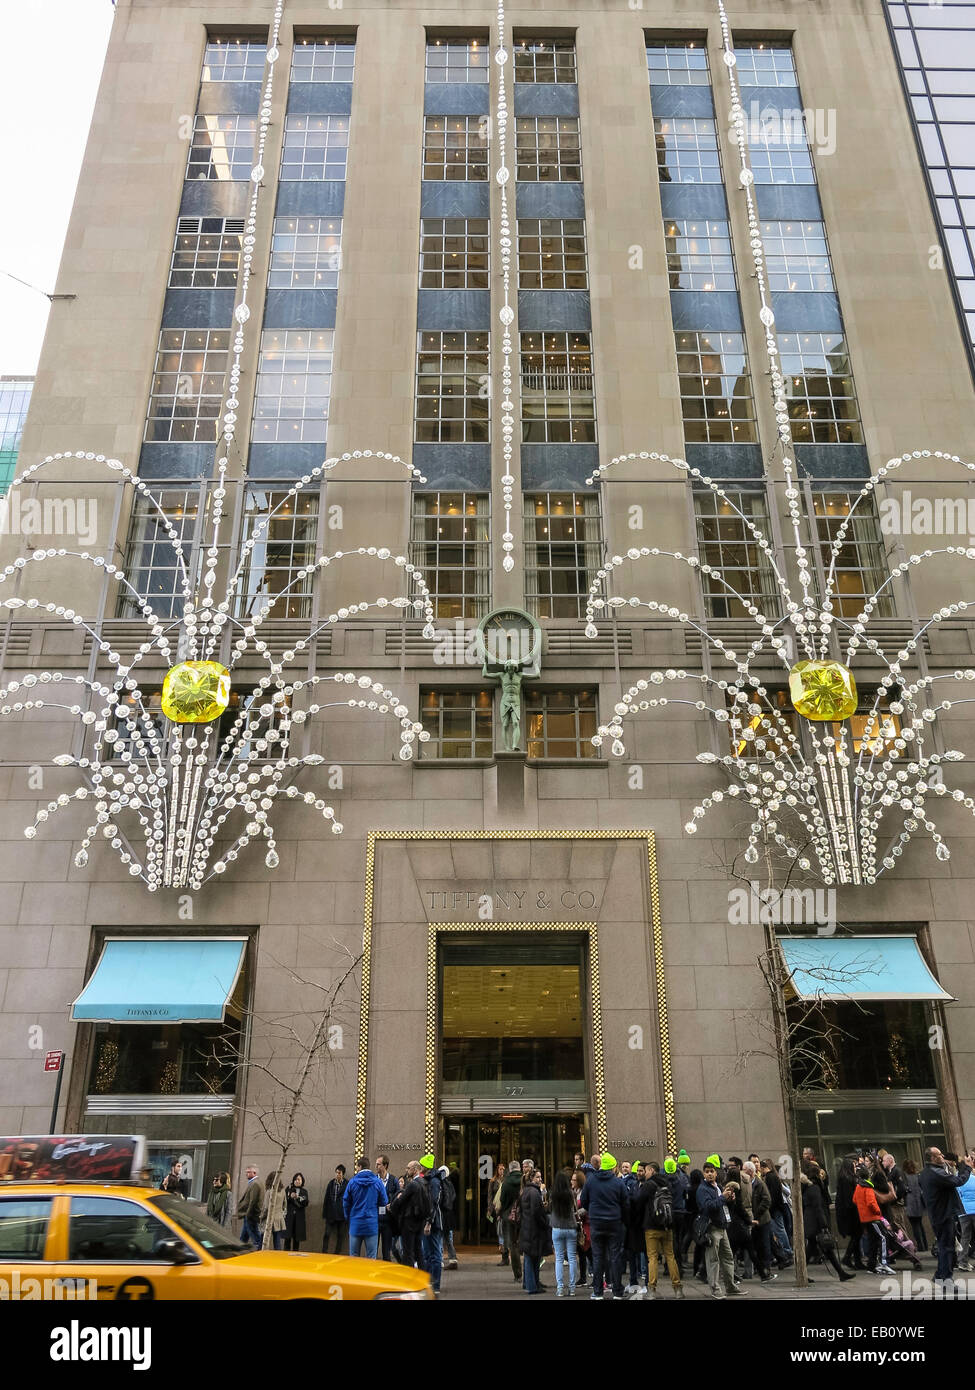 Tiffany & Co., Jewelry Store, Holiday Decorations, NYC